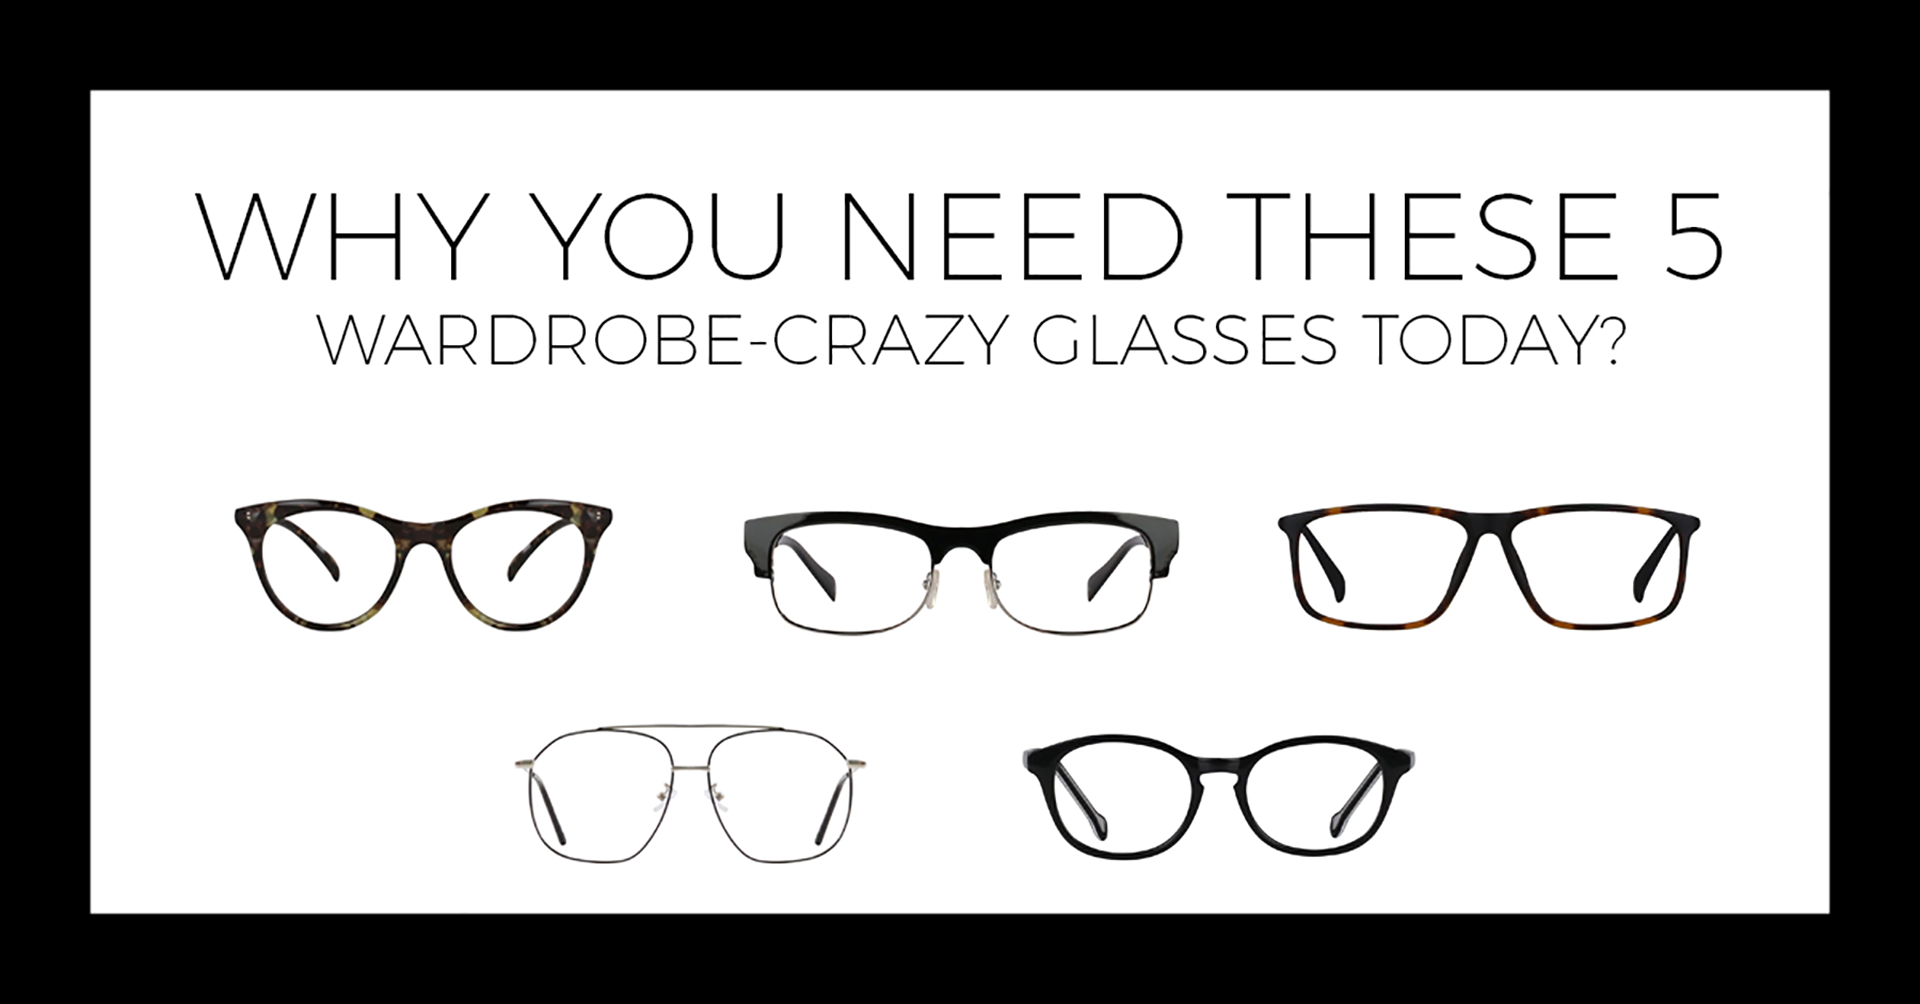 11) WHY YOU NEED THESE 5 WARDROBE-CRAZY GLASSES TODAY?